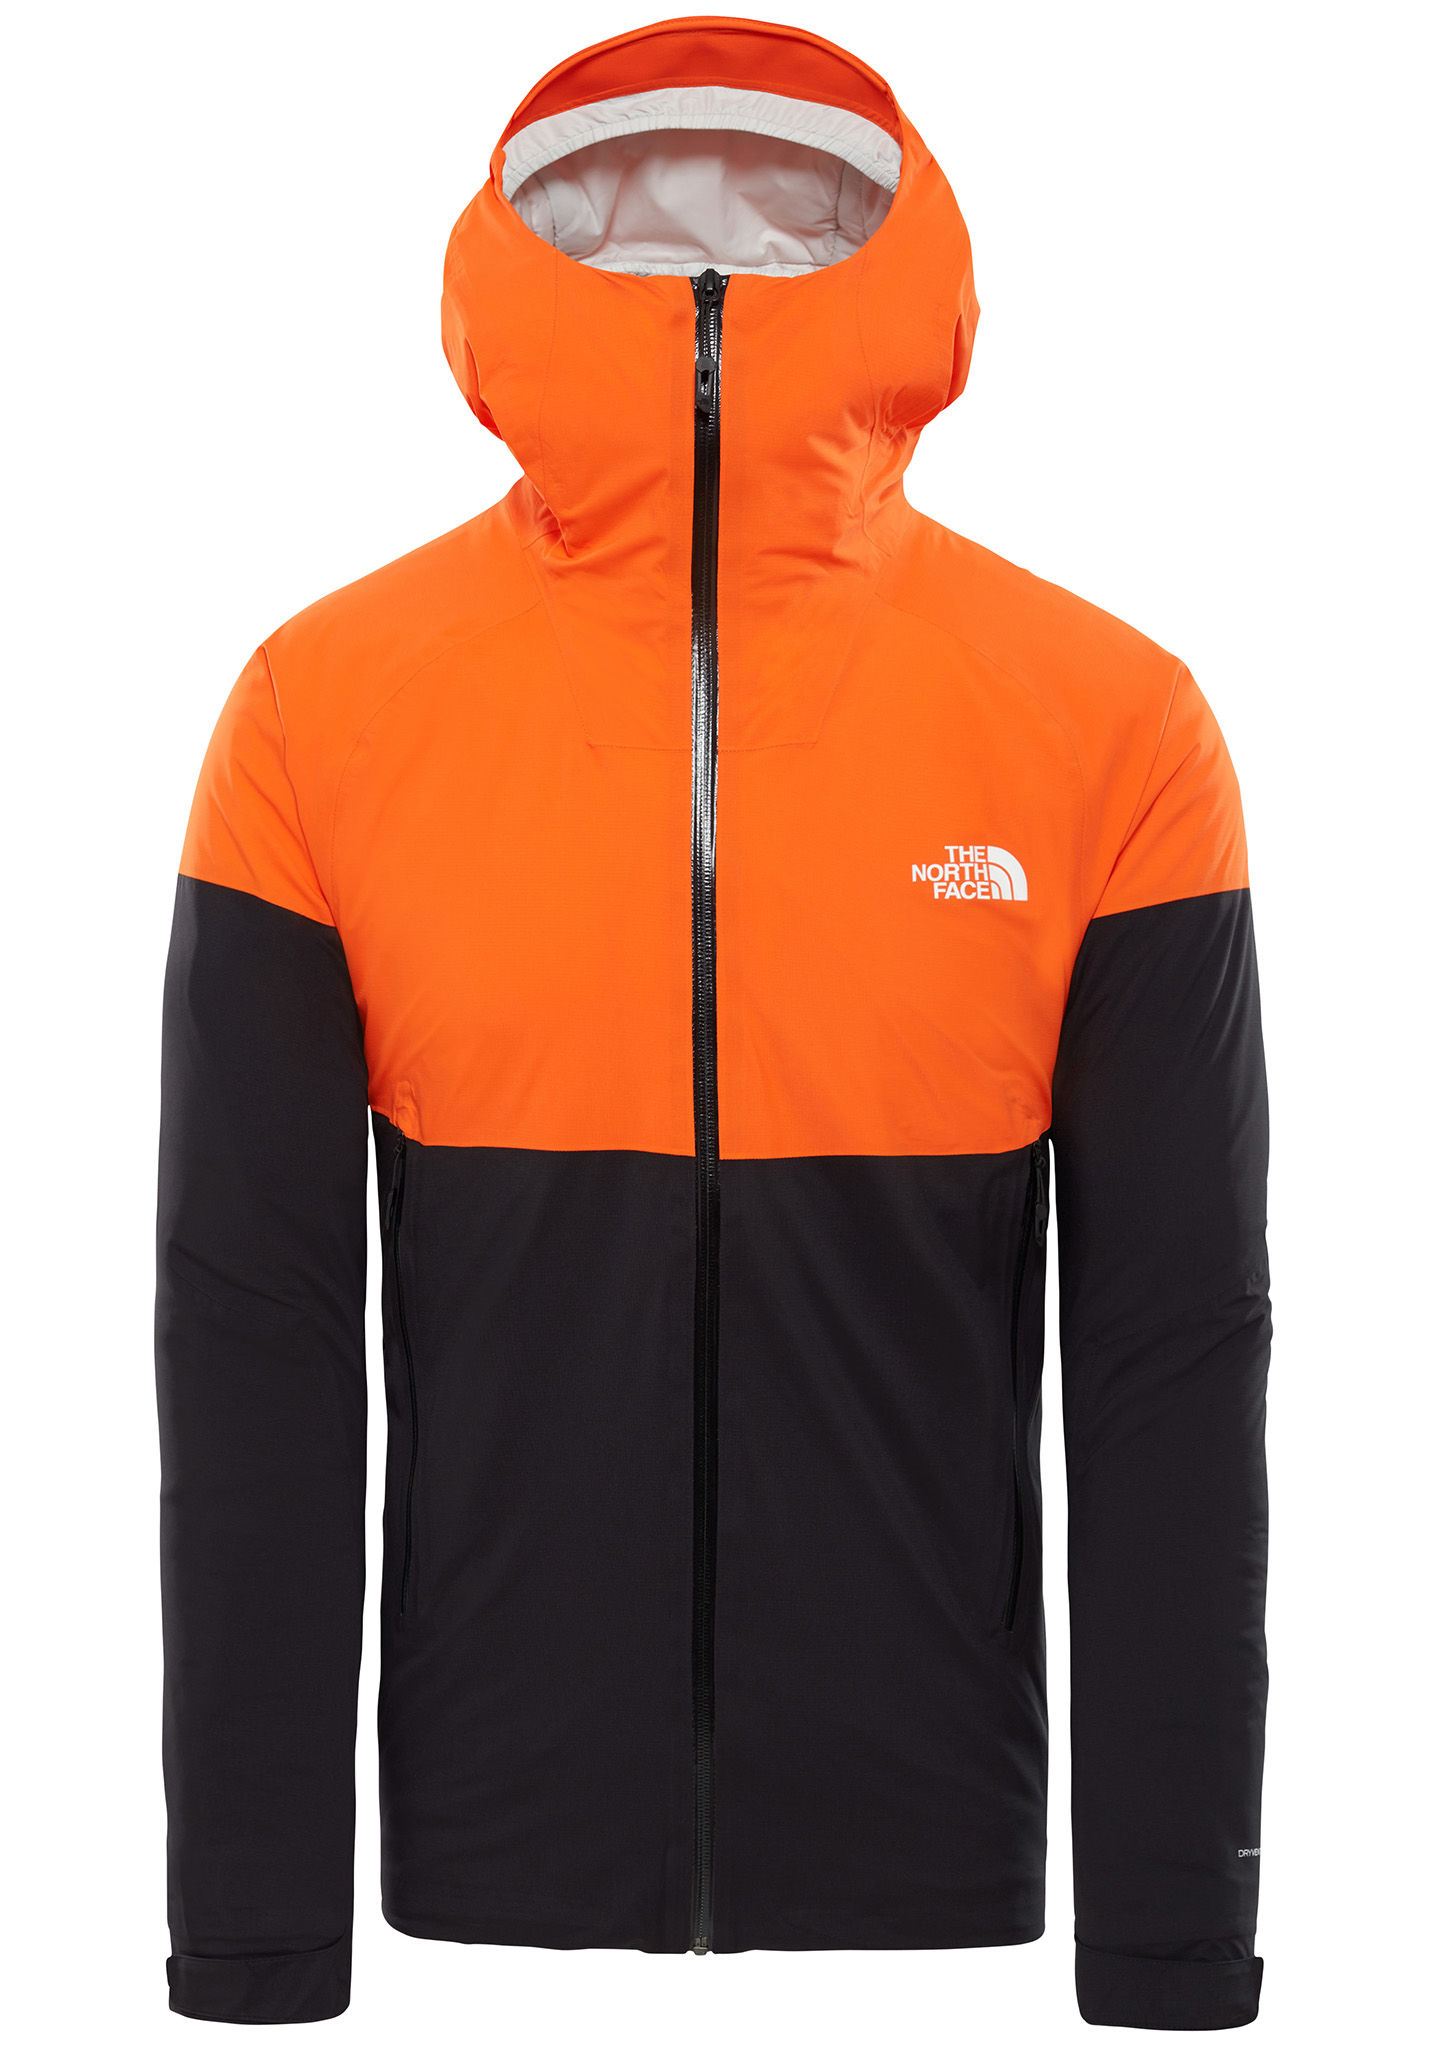 104a145685 THE NORTH FACE Impendor Insulated - Outdoorjacke für Herren - Orange - Planet  Sports